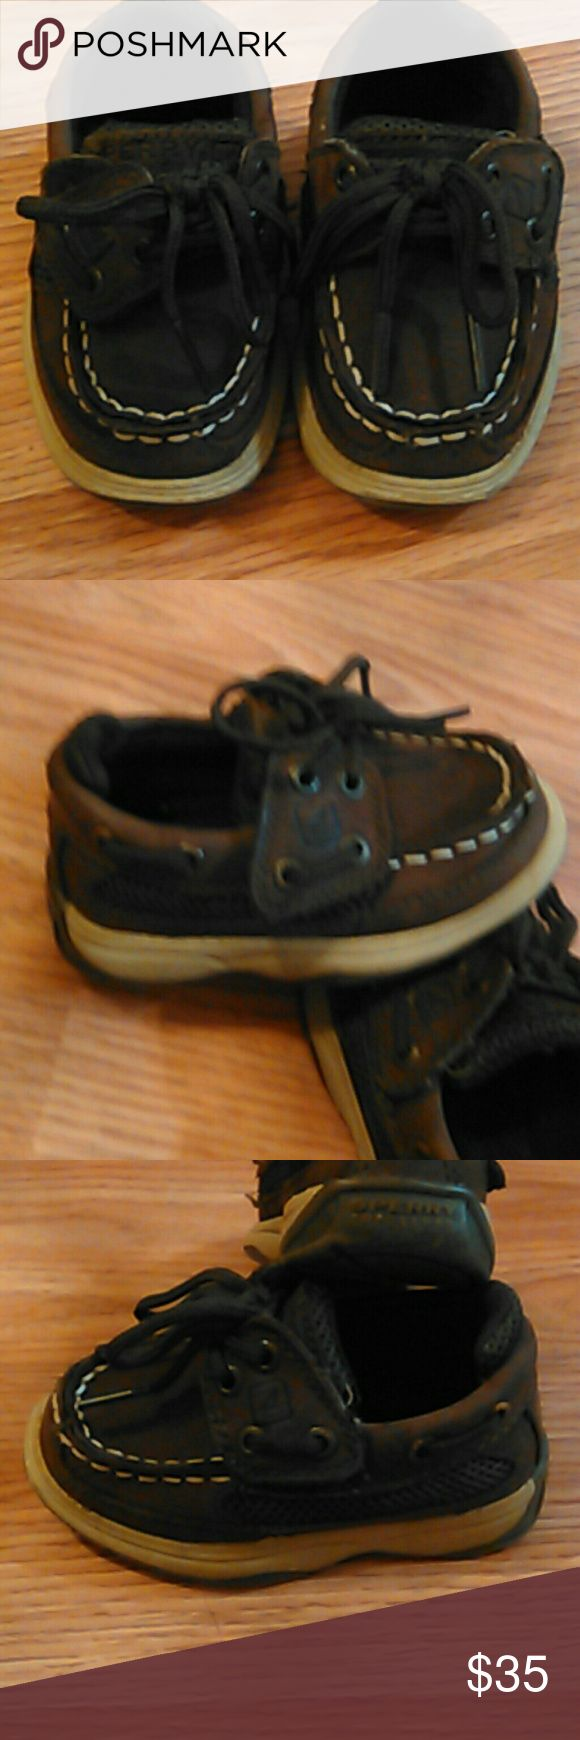 Sperry shows baby size 5M Sperry brand baby shoes size 5 M. Brown colors nice condition gently /rarely used. Velcro . Only looks like they tie. Really cute pair of shoes for your handsome little man!! Sperry Shoes Baby & Walker